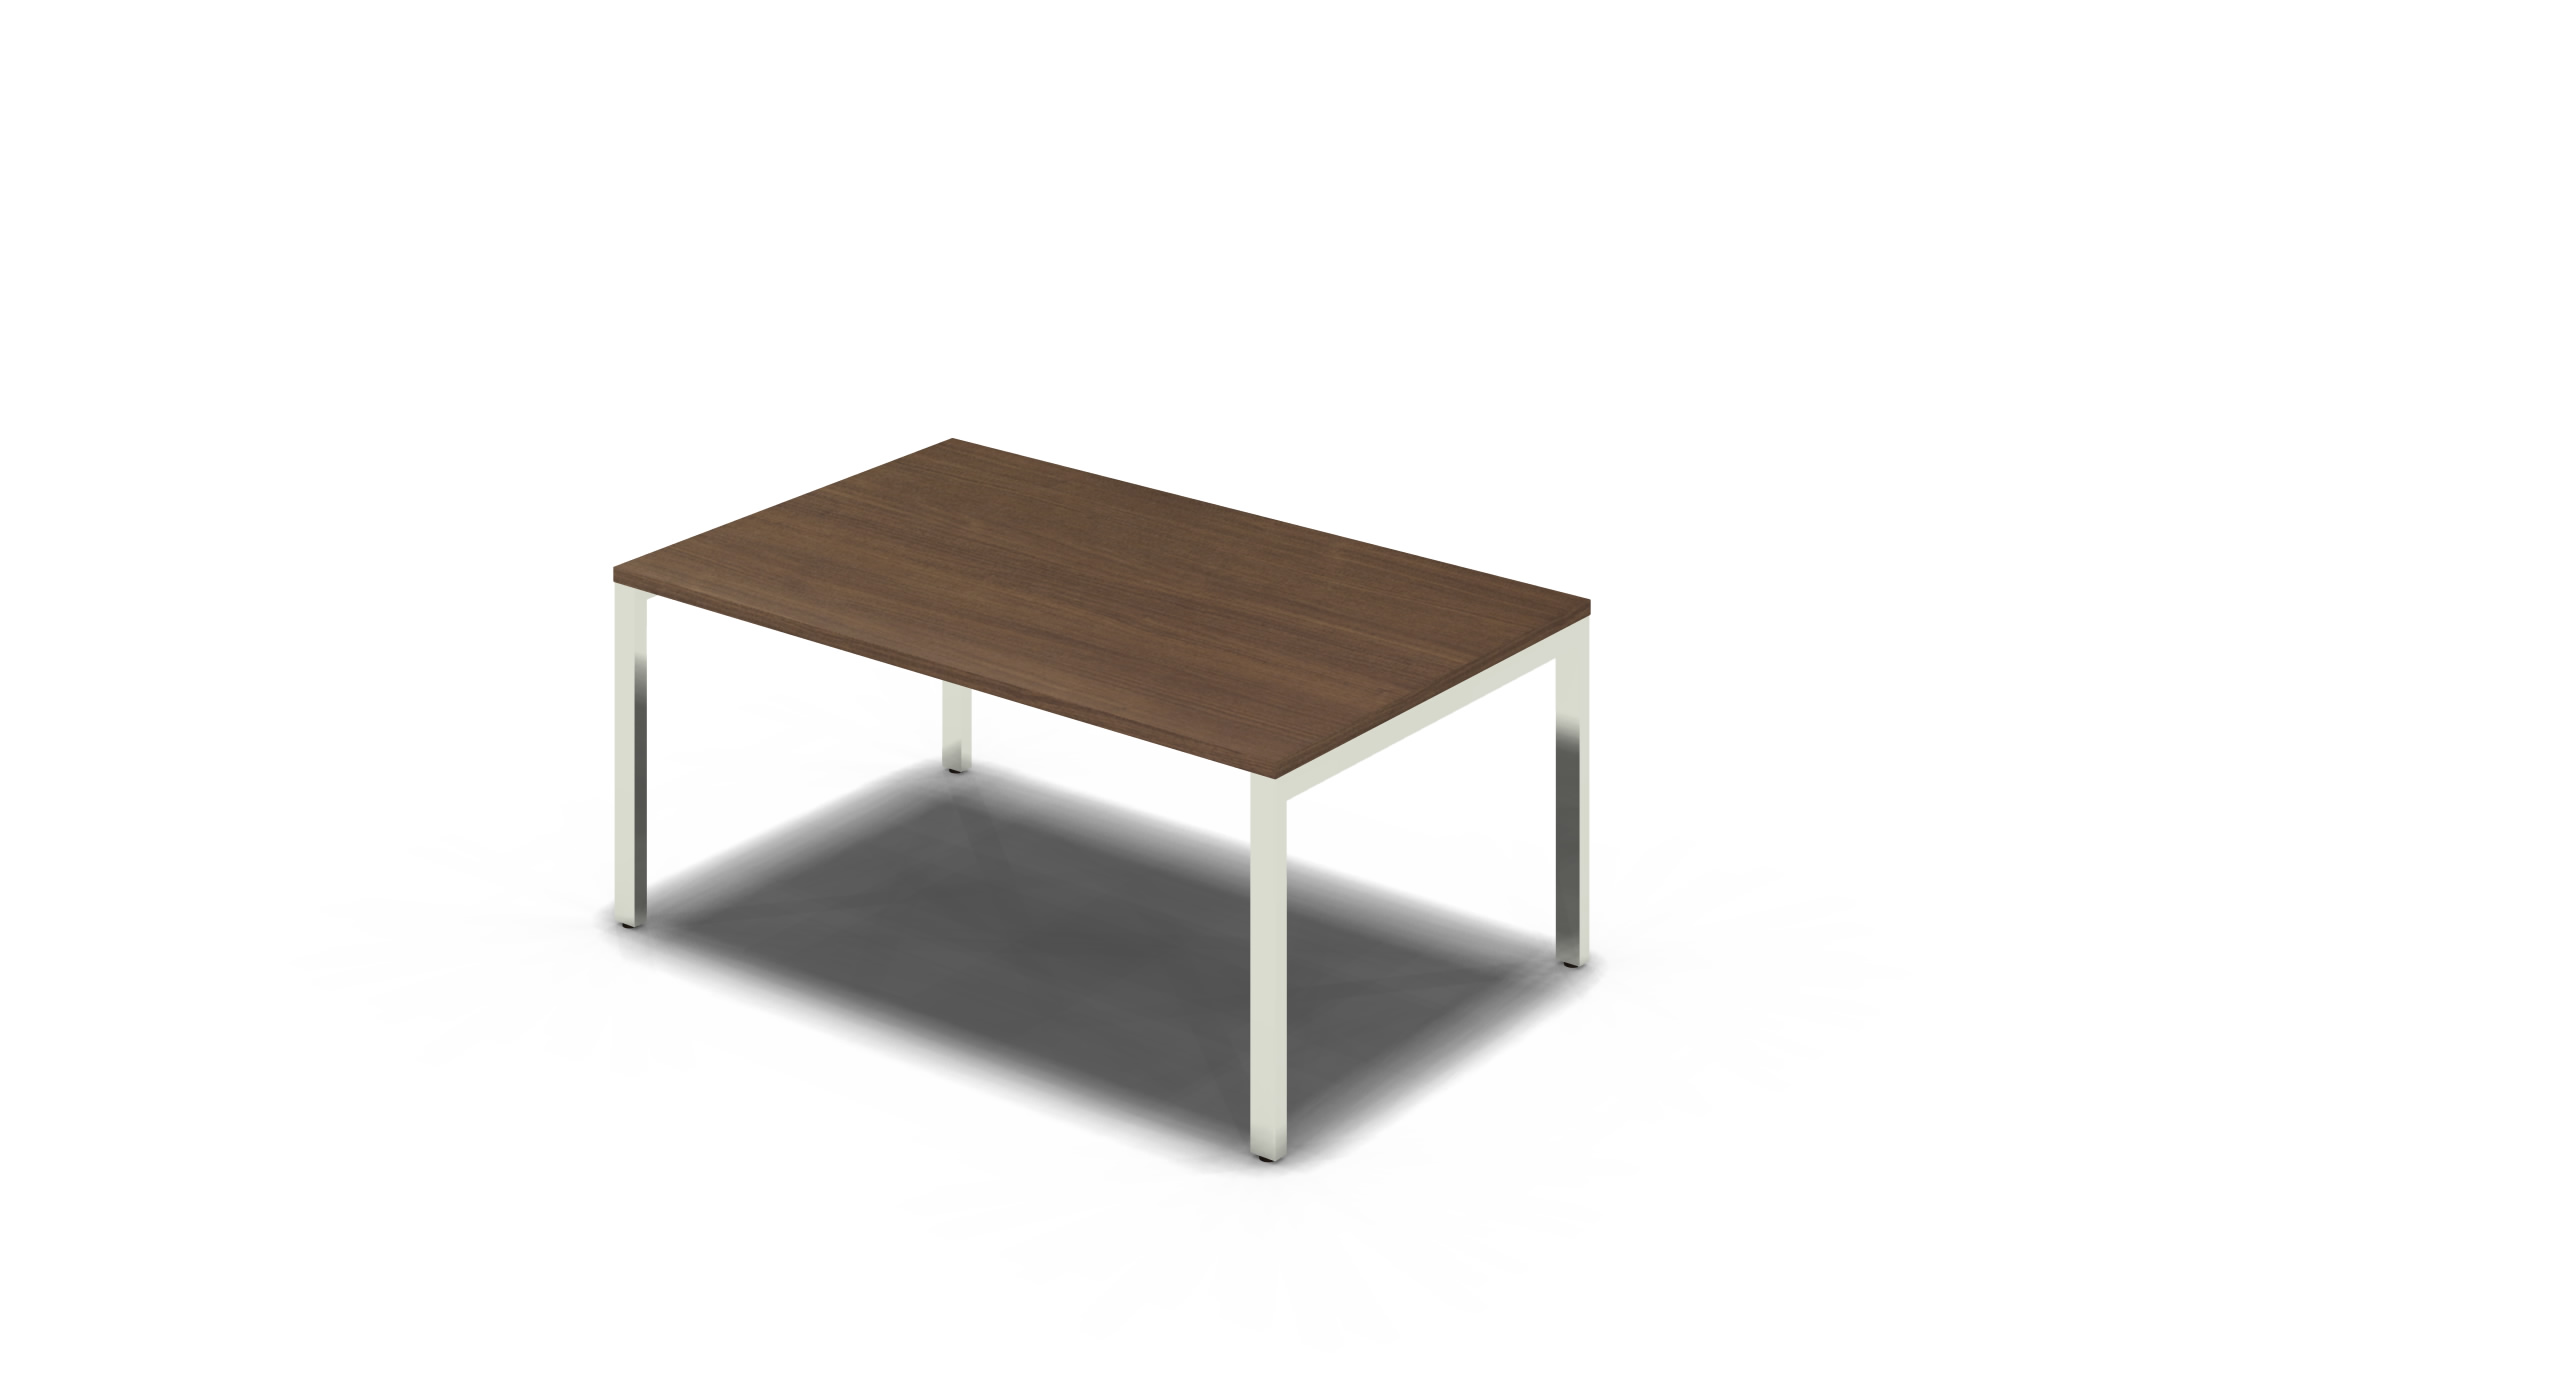 Table_Square_1500x900_Chrome_Walnut_noOption